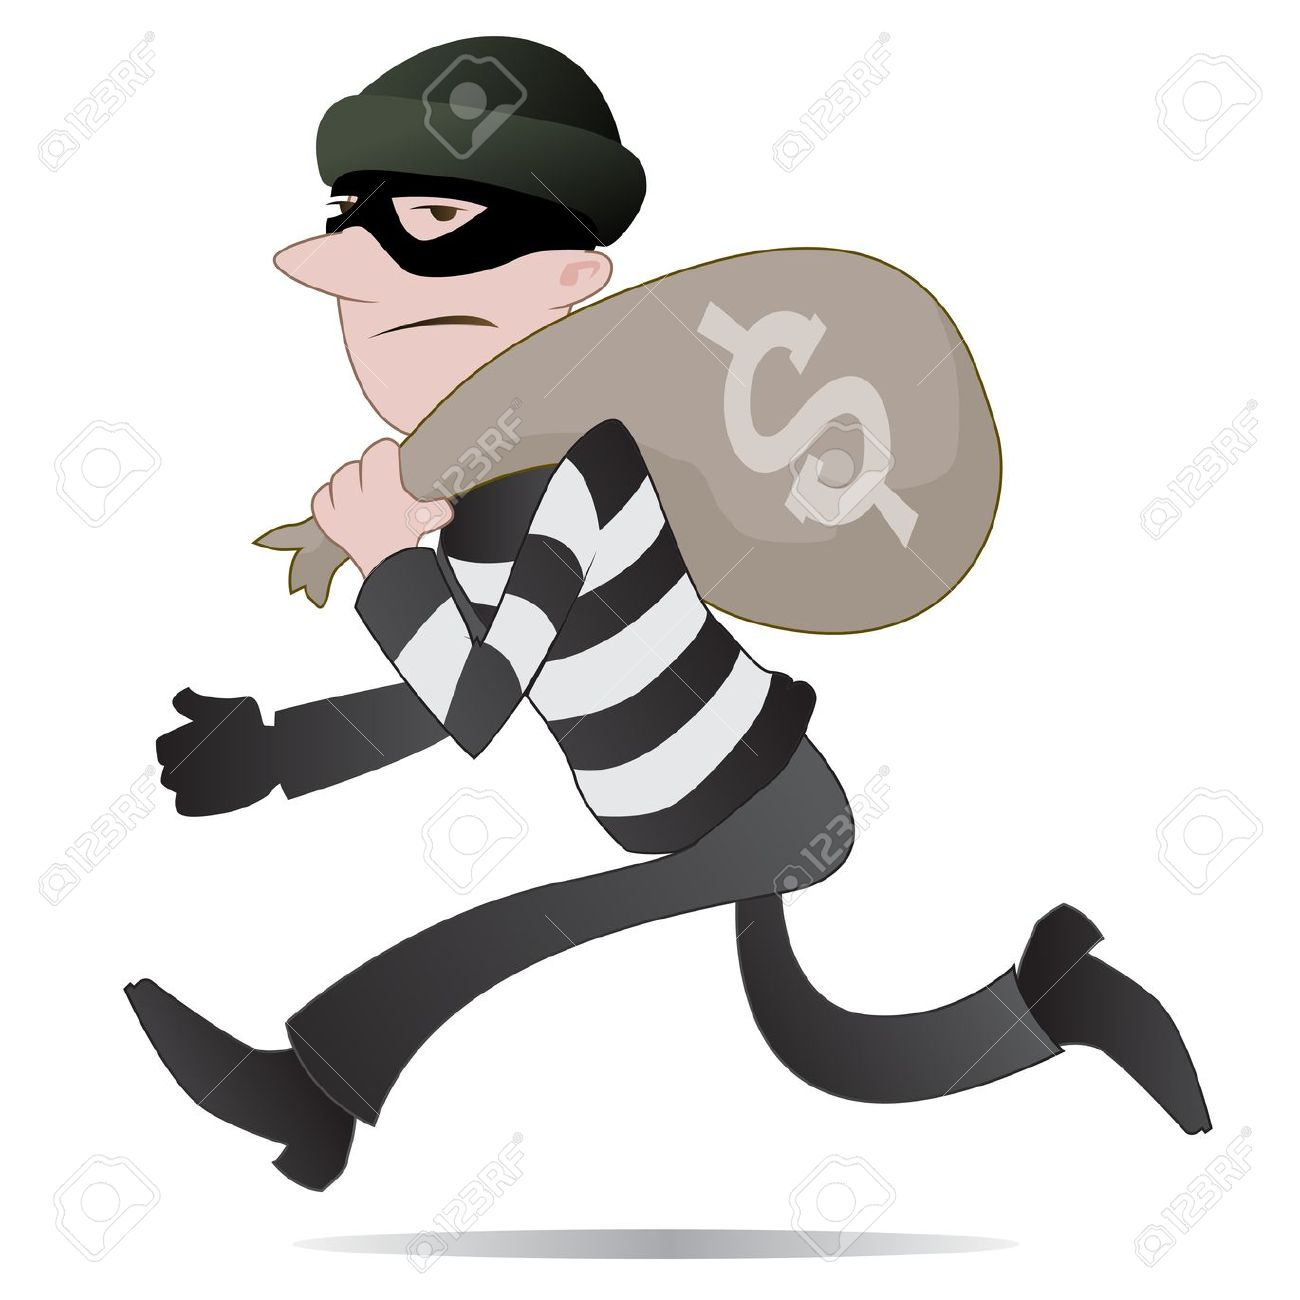 Cartoon robber clipart black and white download Robber Clipart & Robber Clip Art Images - ClipartALL.com black and white download